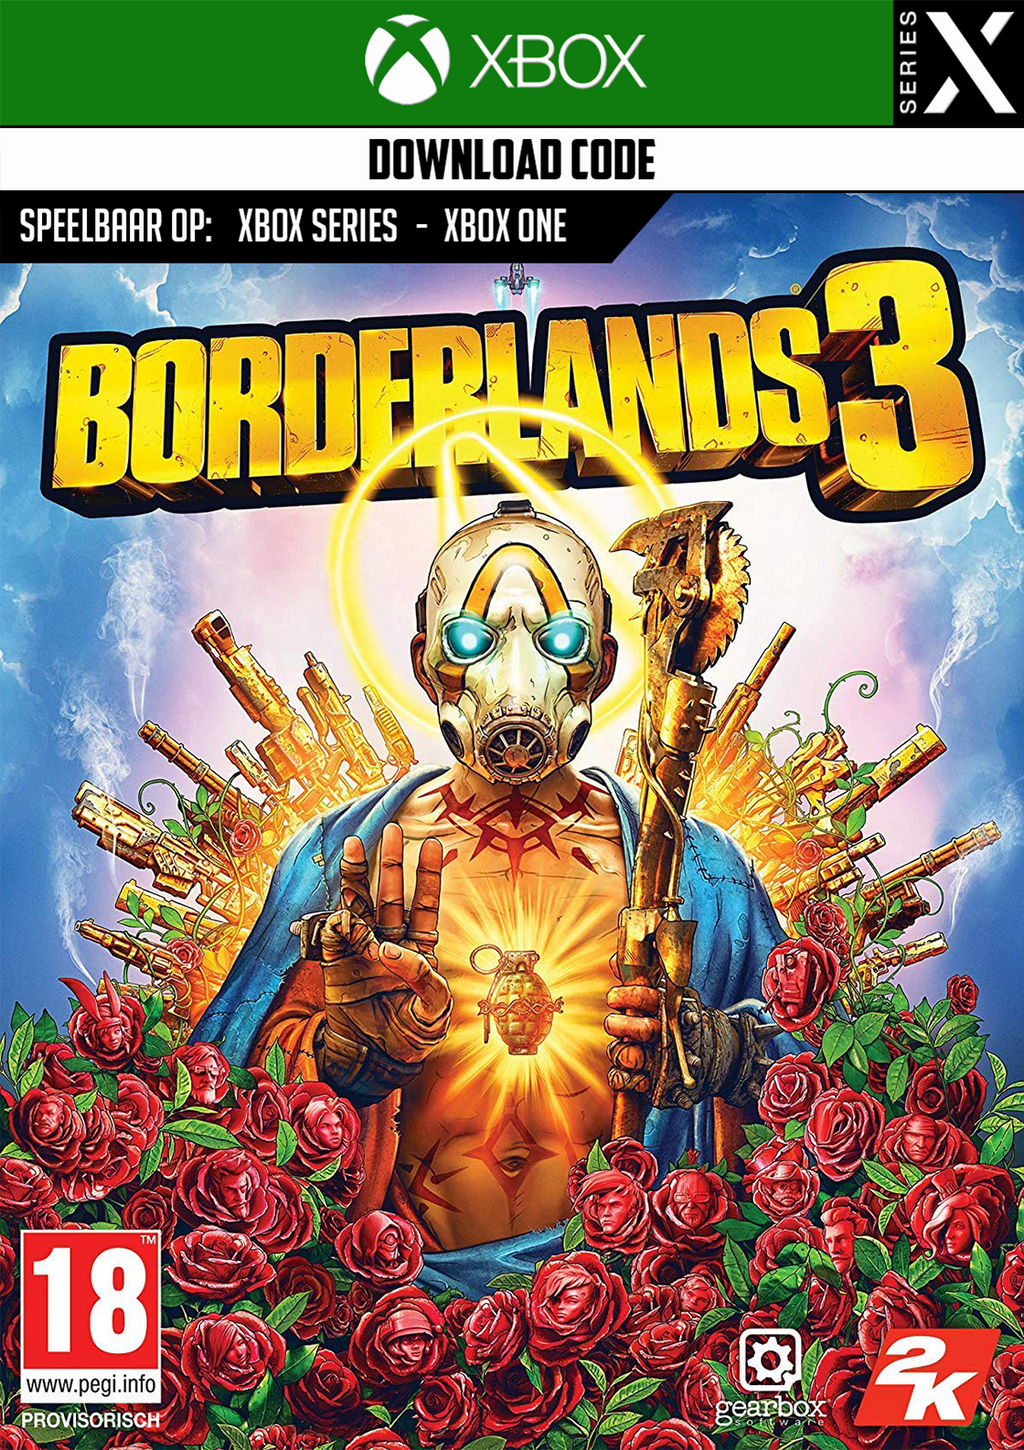 Borderlands 3 - Xbox Download (Smart Delivery)